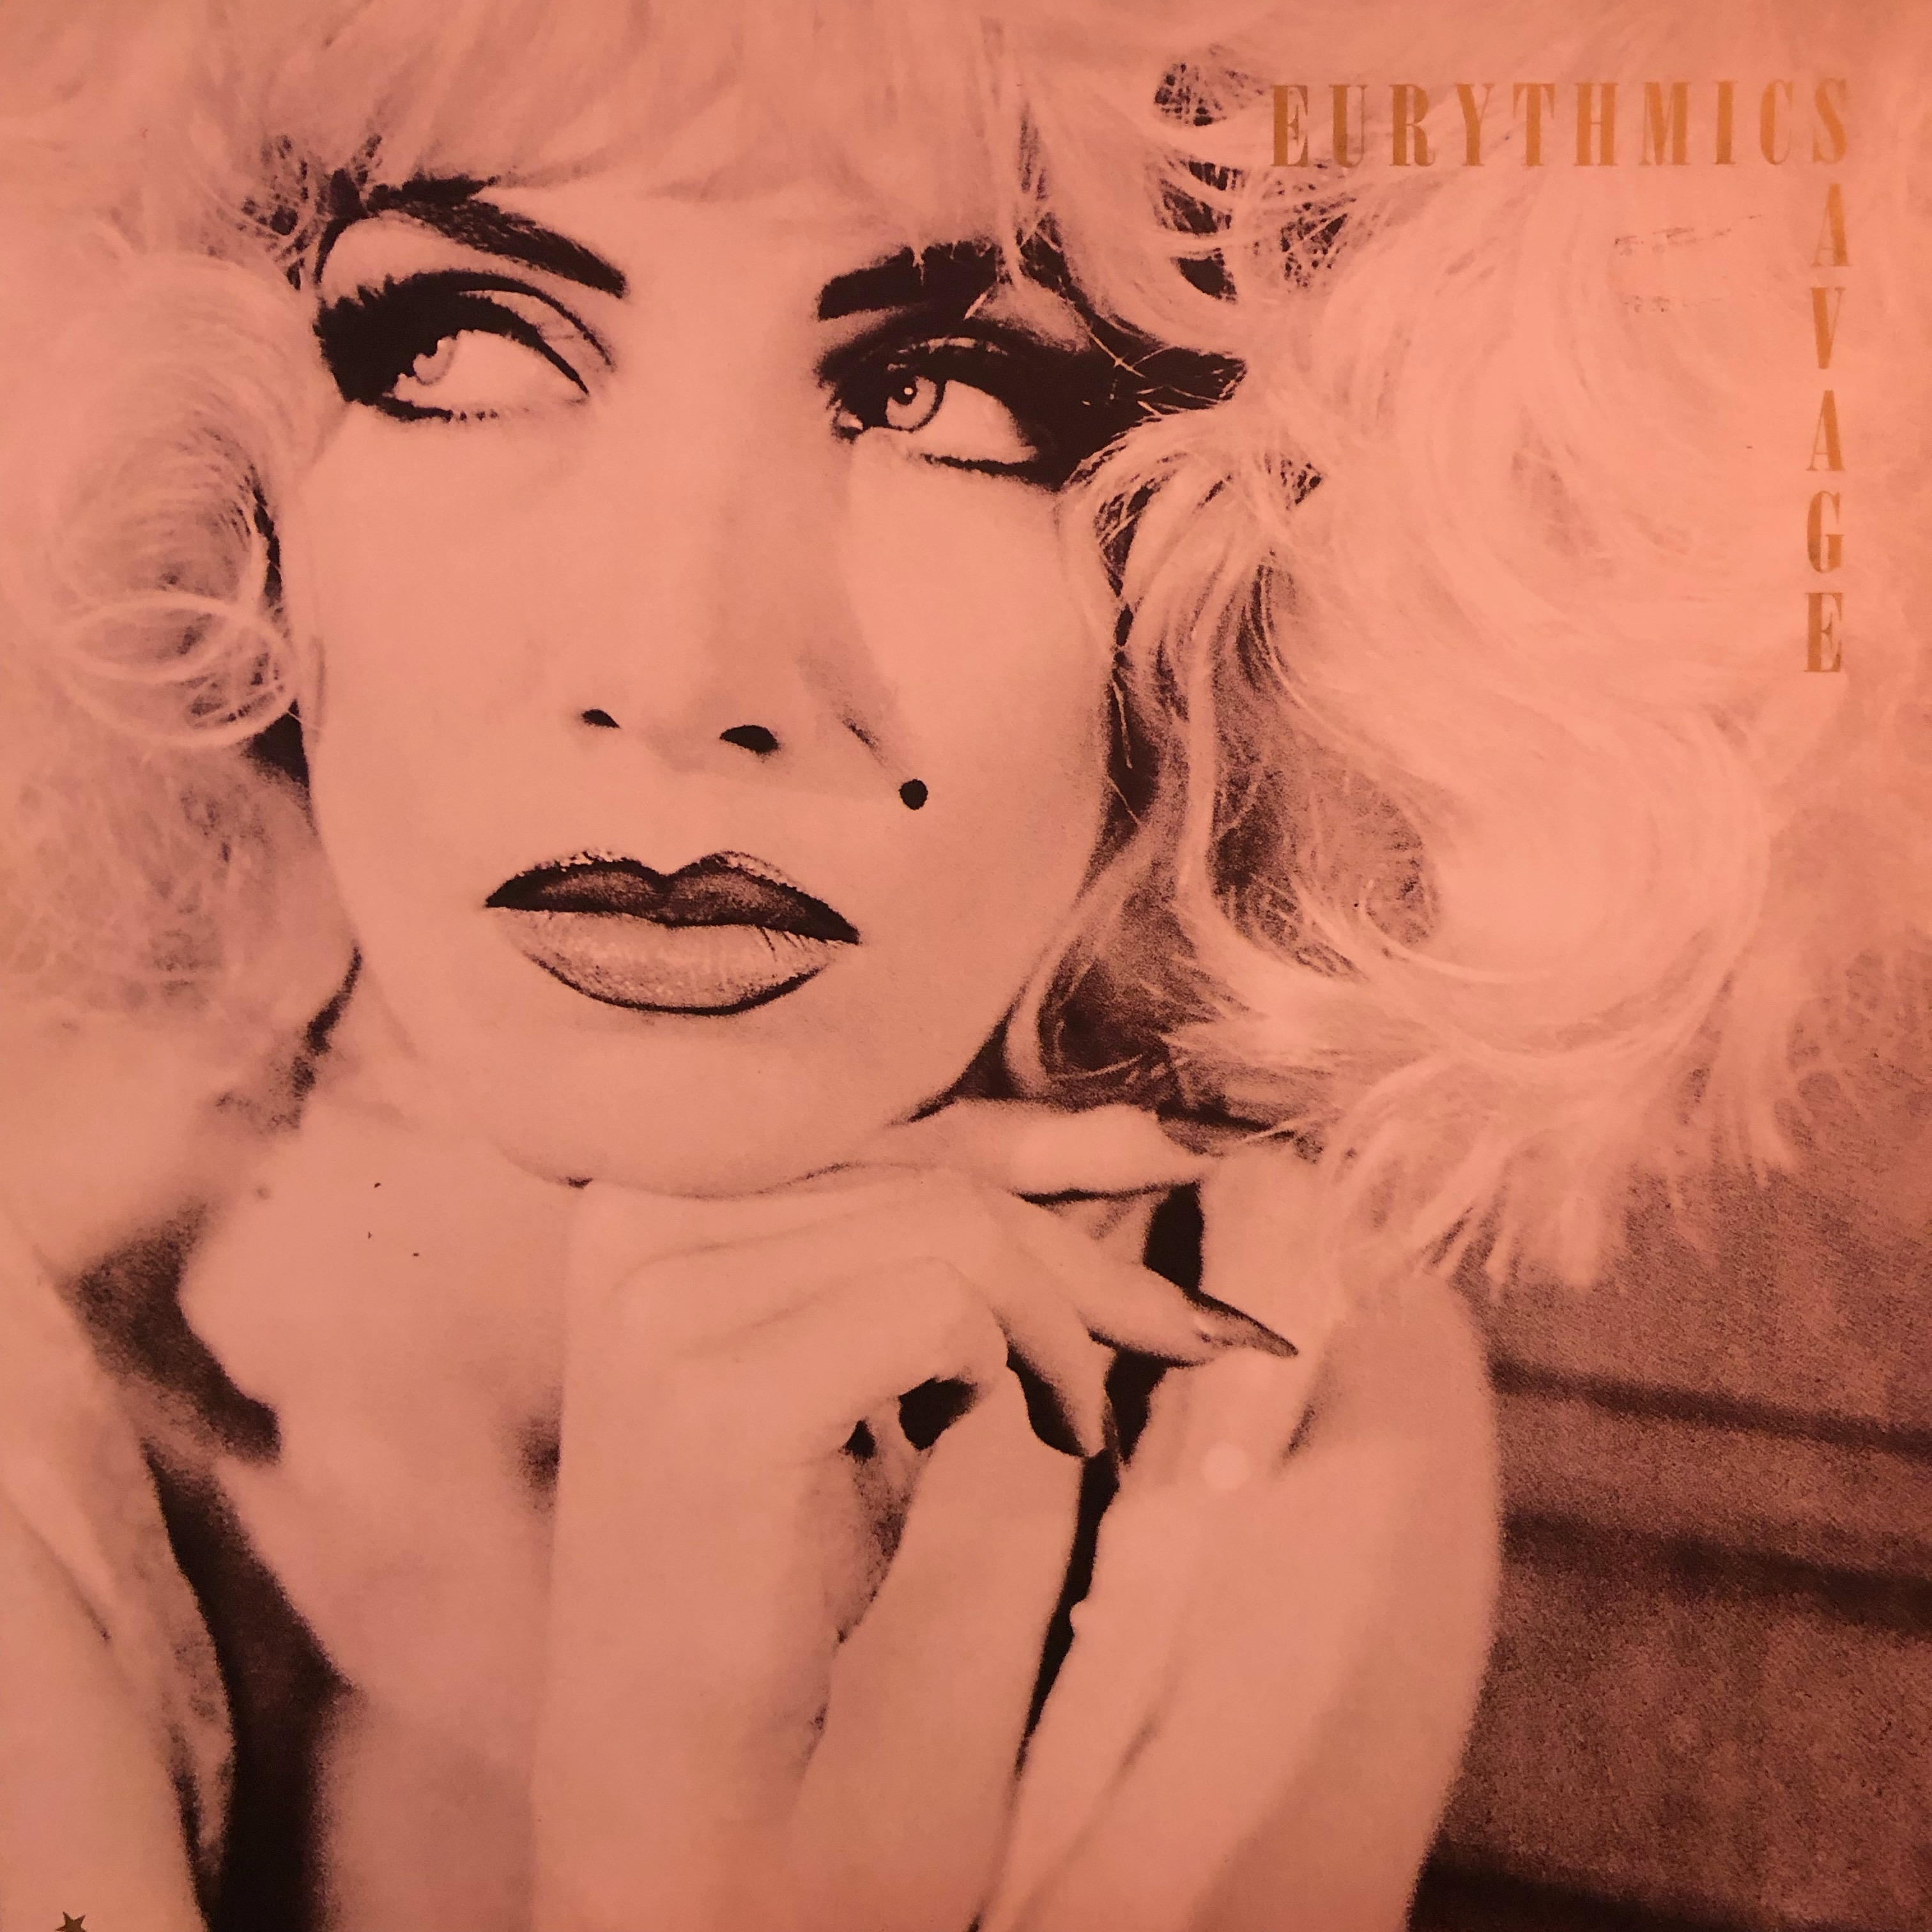 Eurythmics - Savage - Front Cover